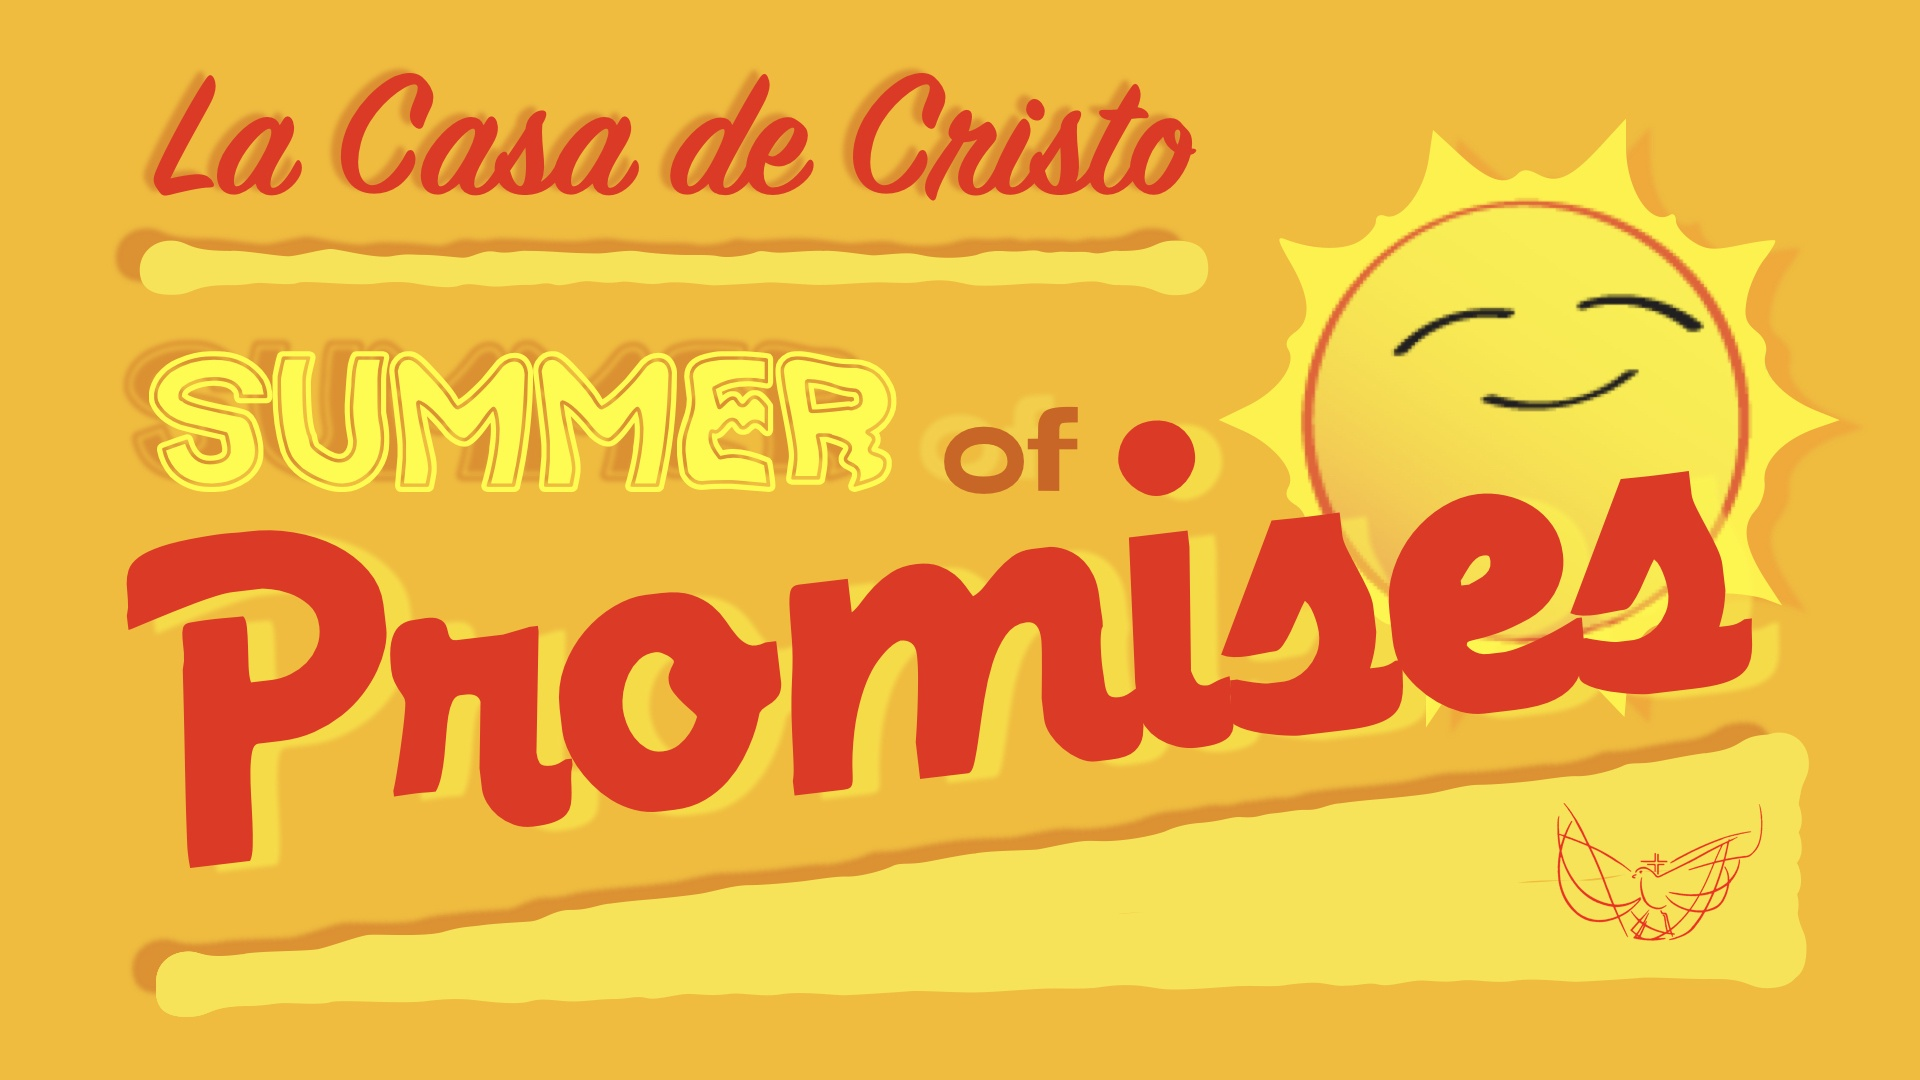 Summer of Promises at Phoenix, Arizona's La Casa de Cristo Lutheran Church